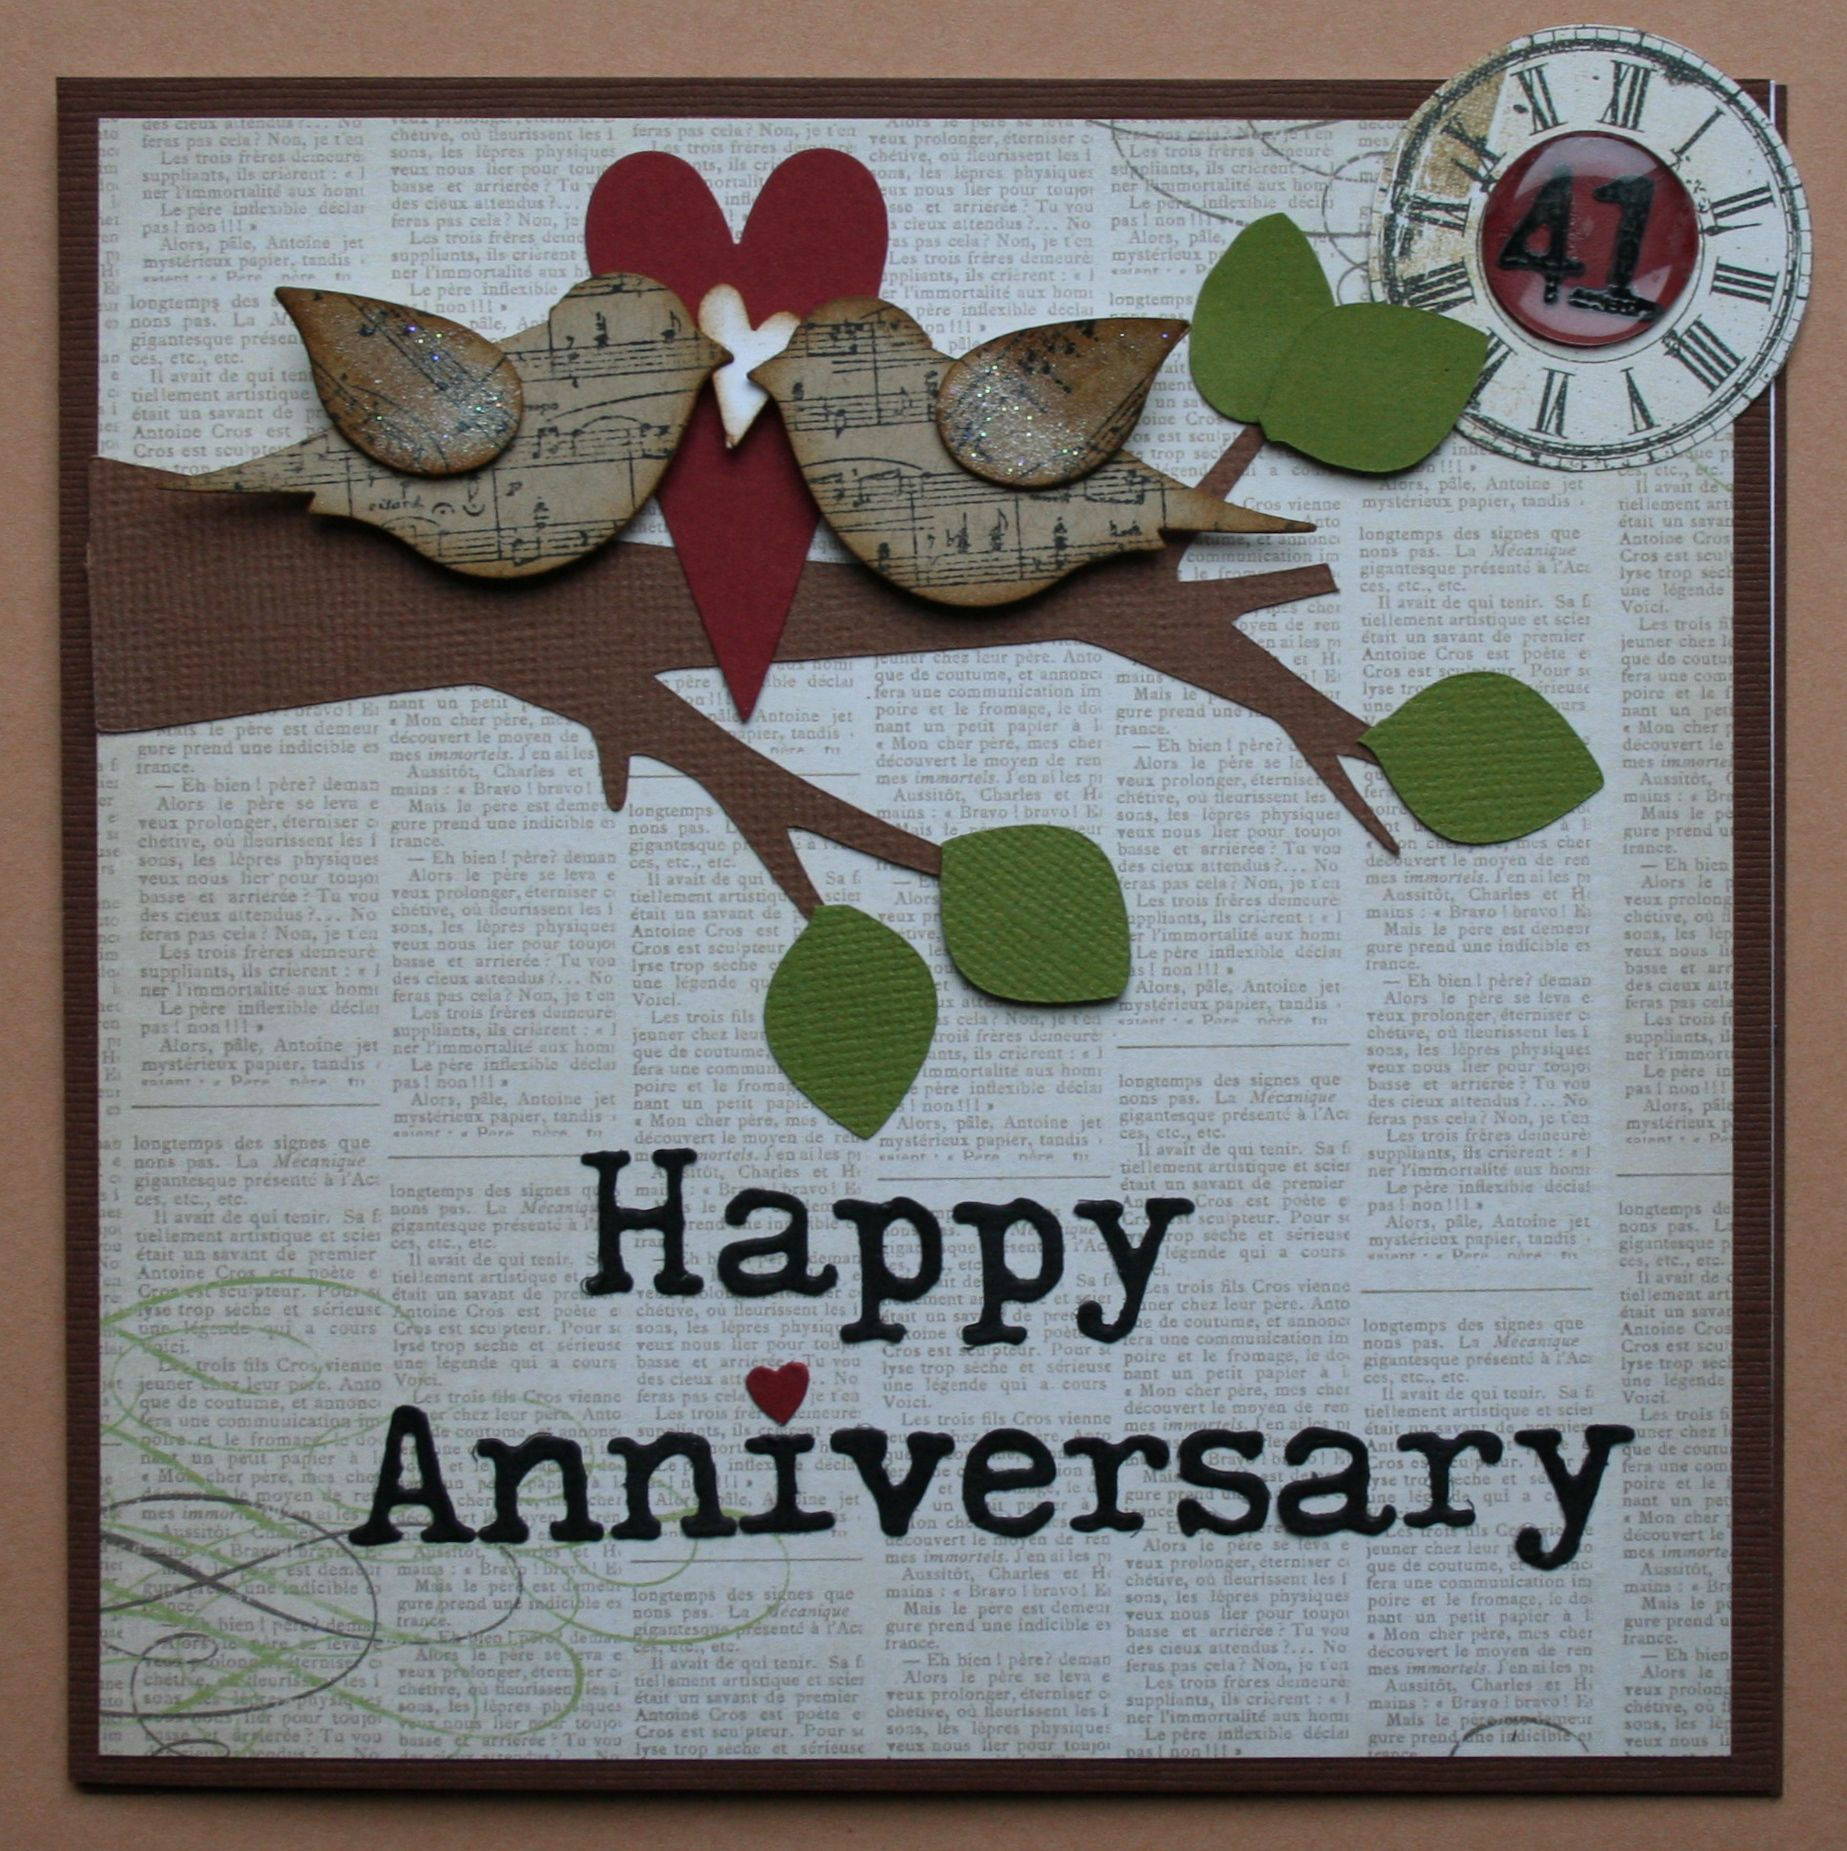 Happy Anniversary Anniversary scrapbook